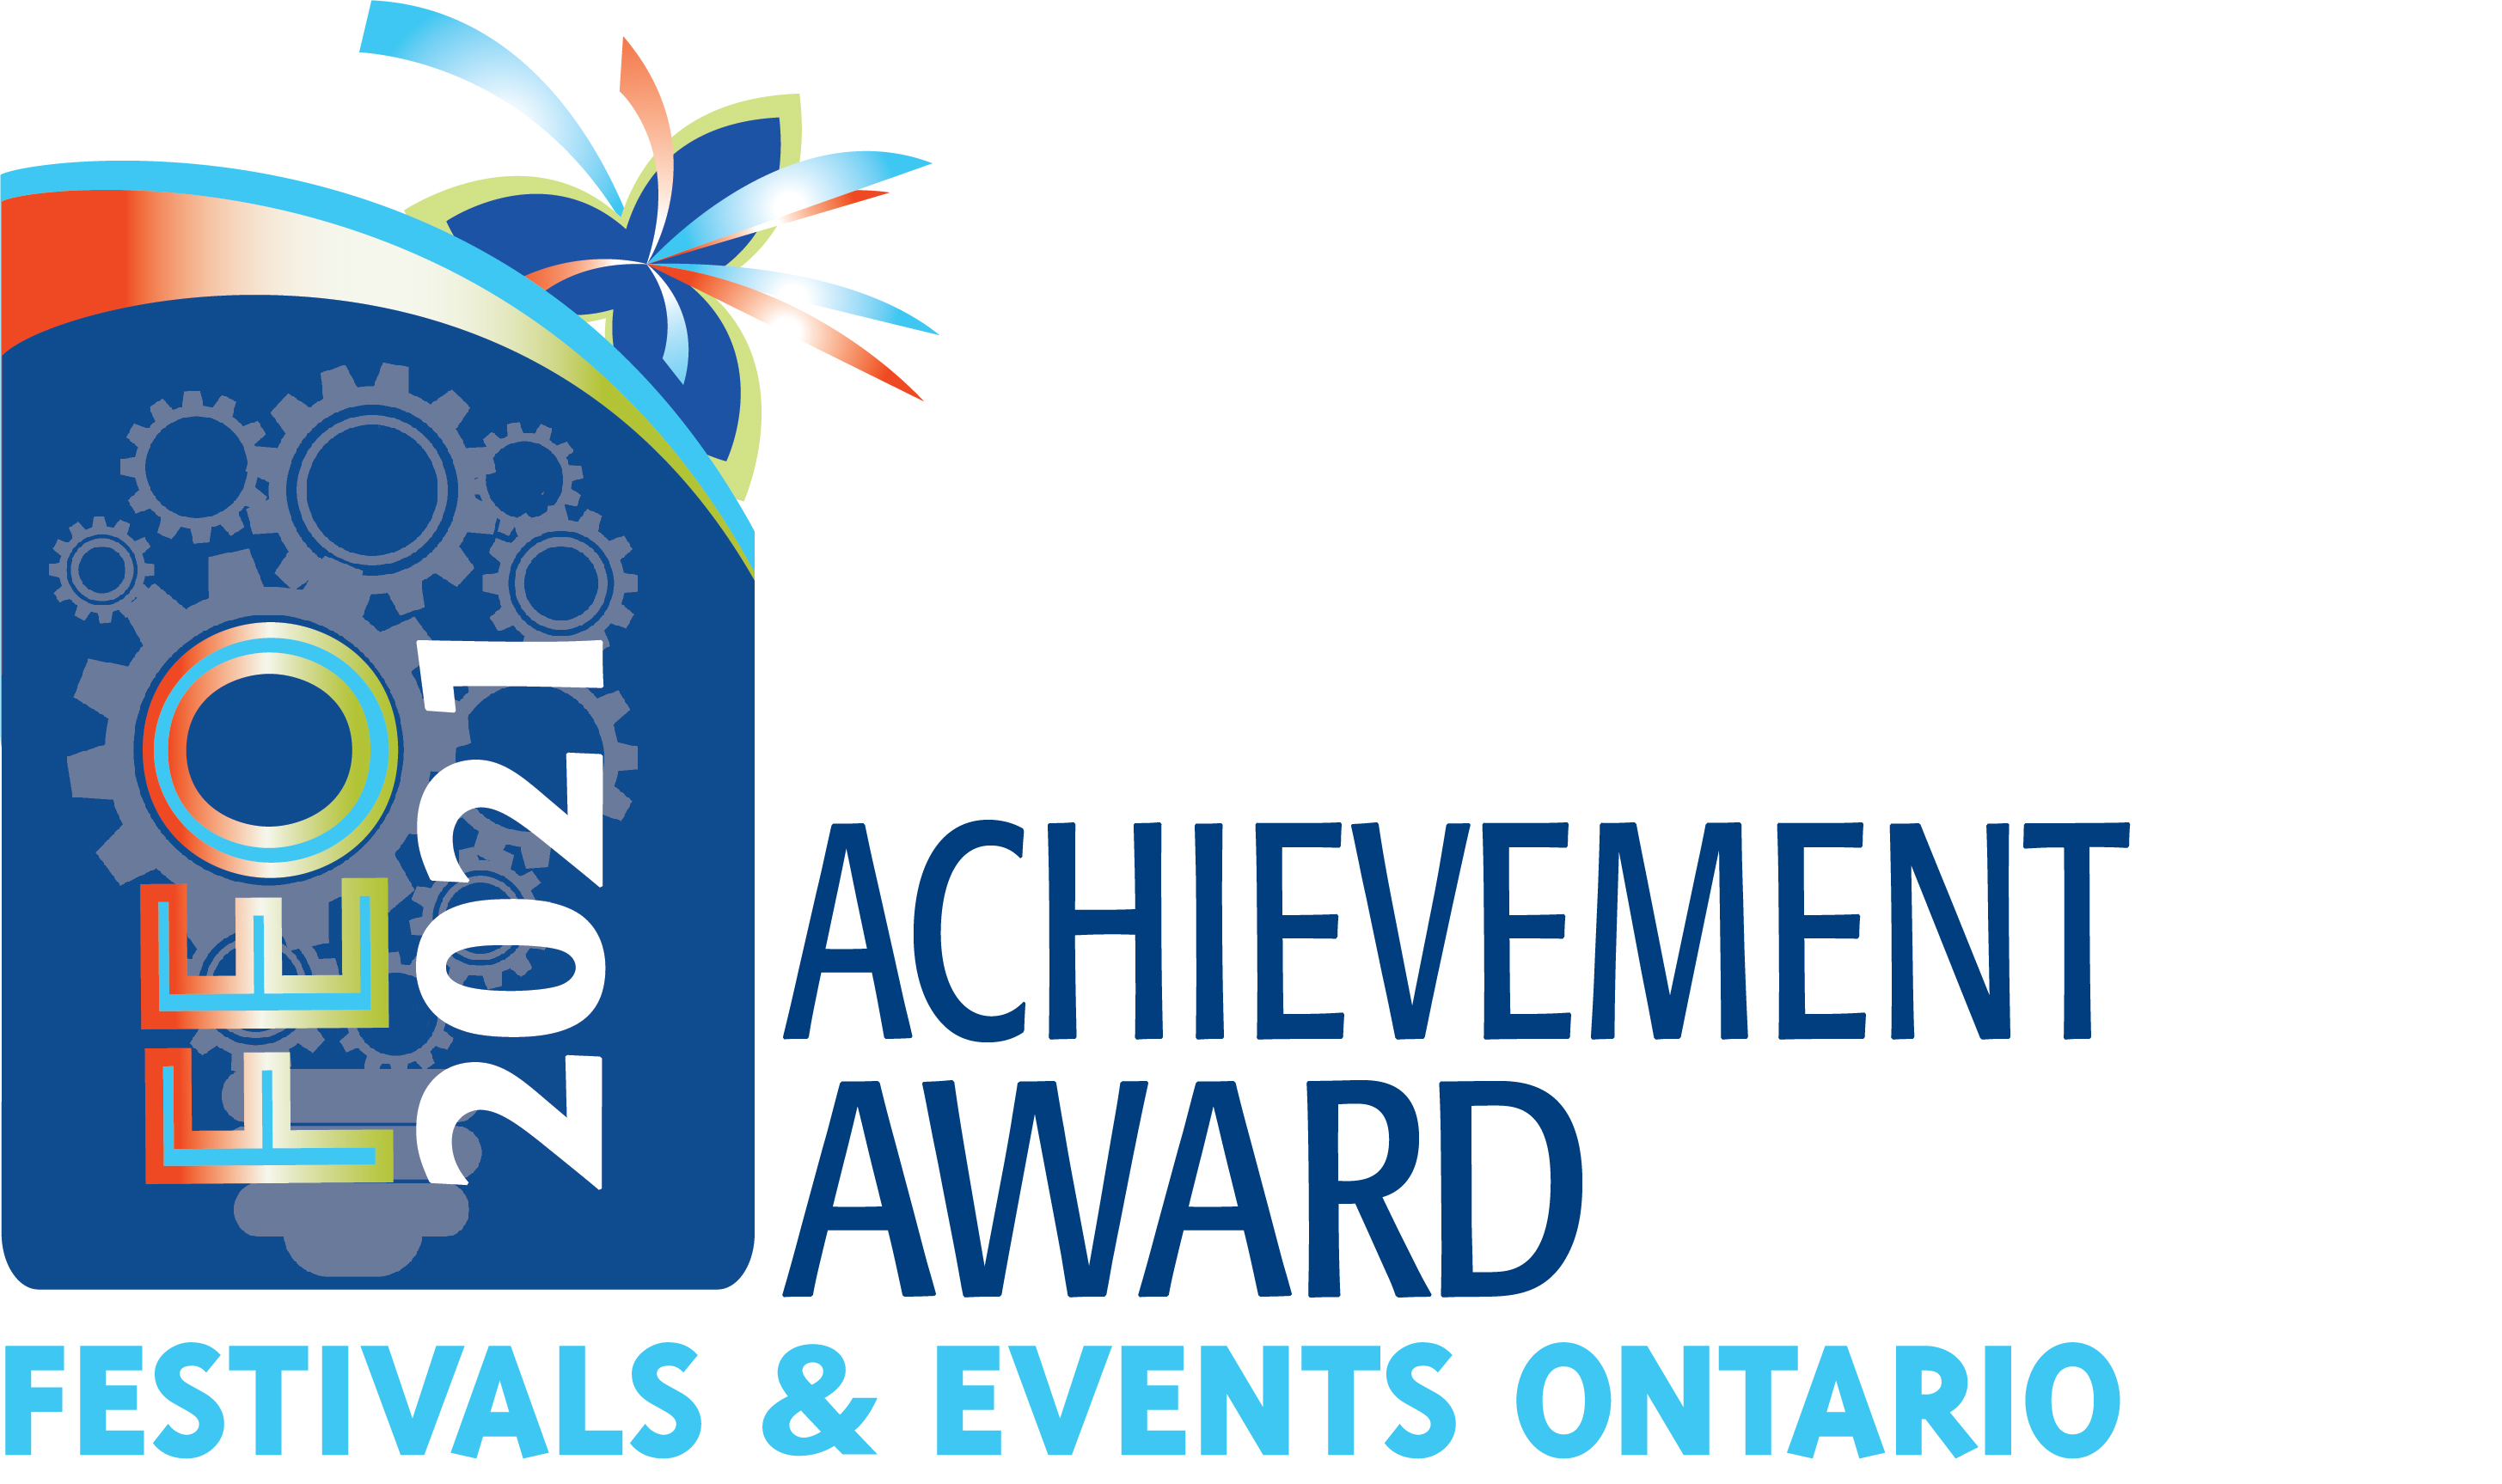 2021 FEO Achievement Award logo